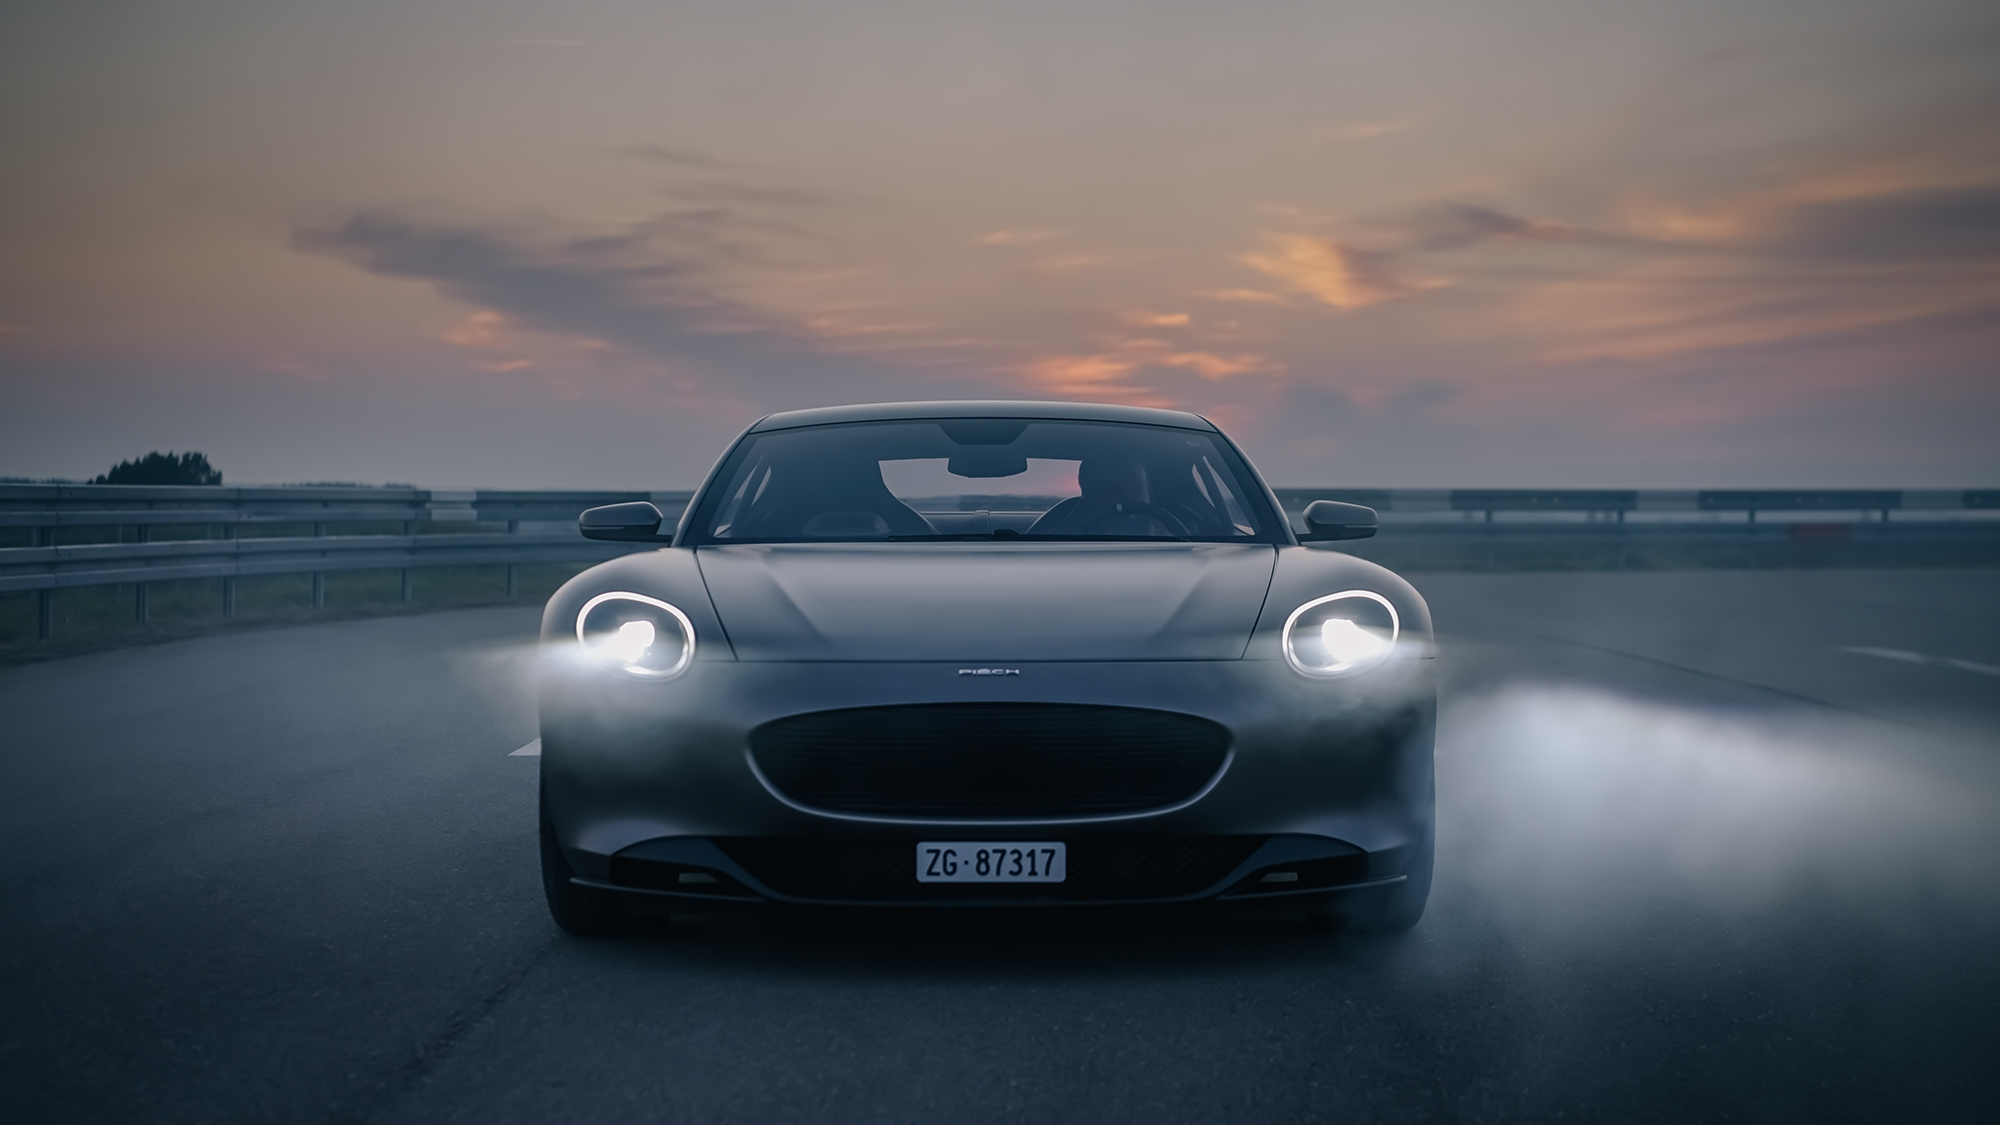 A grey Piech GT shot from the front on an airfield at dusk